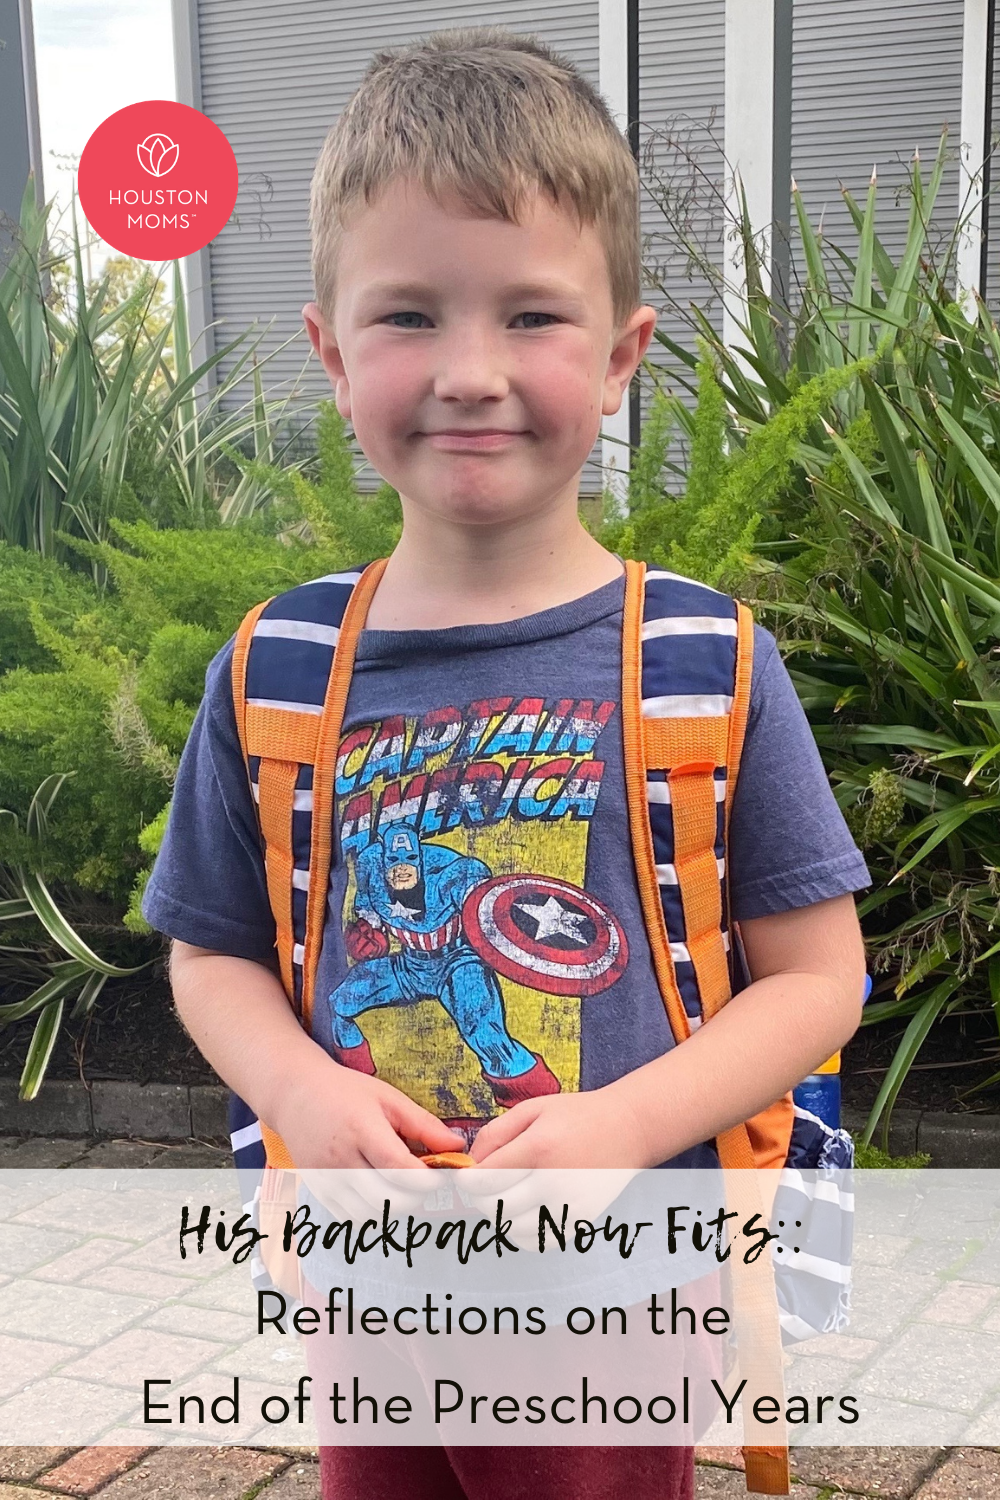 """Houston Moms """"His Backpack Now Fits:: Reflections on the End of the Preschool Years"""" #houstonmoms #houstonmomsblg #momsaroundhouston"""